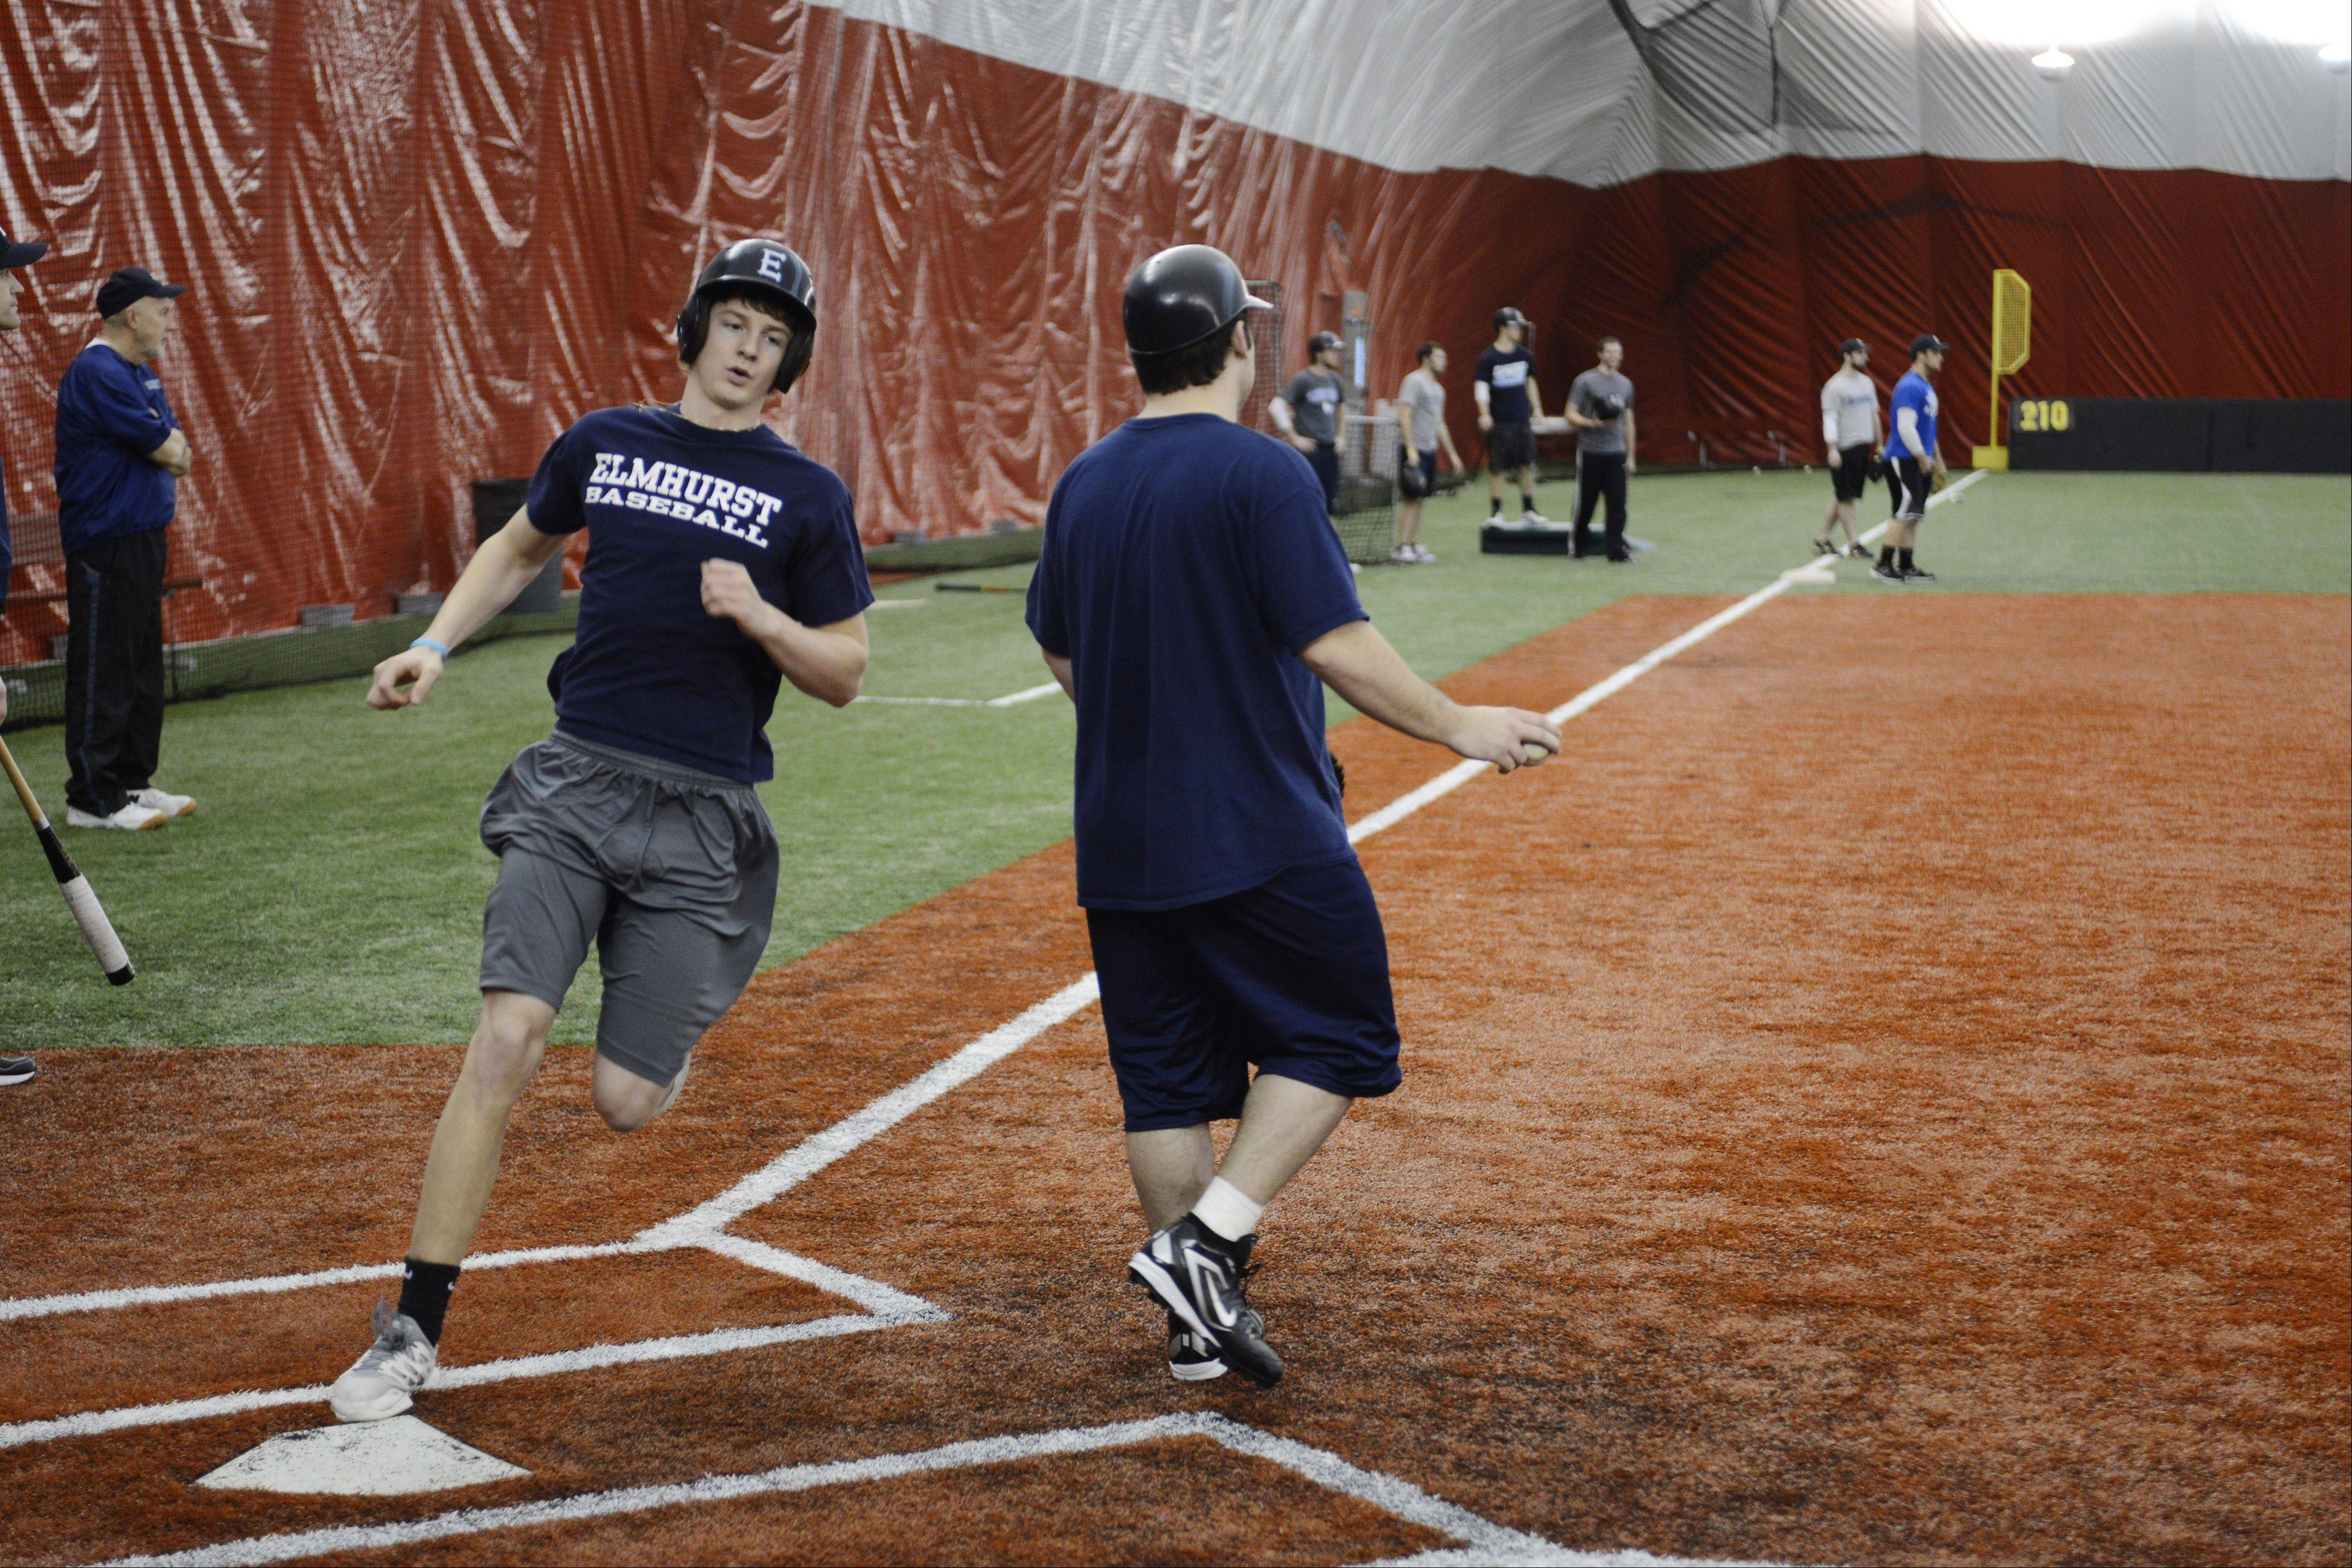 Kevin Bellew steps on the plate as catcher Zach Tsiodras awaits a throw during an Elmhurst College baseball practice at Dome at the Ballpark in Rosemont.